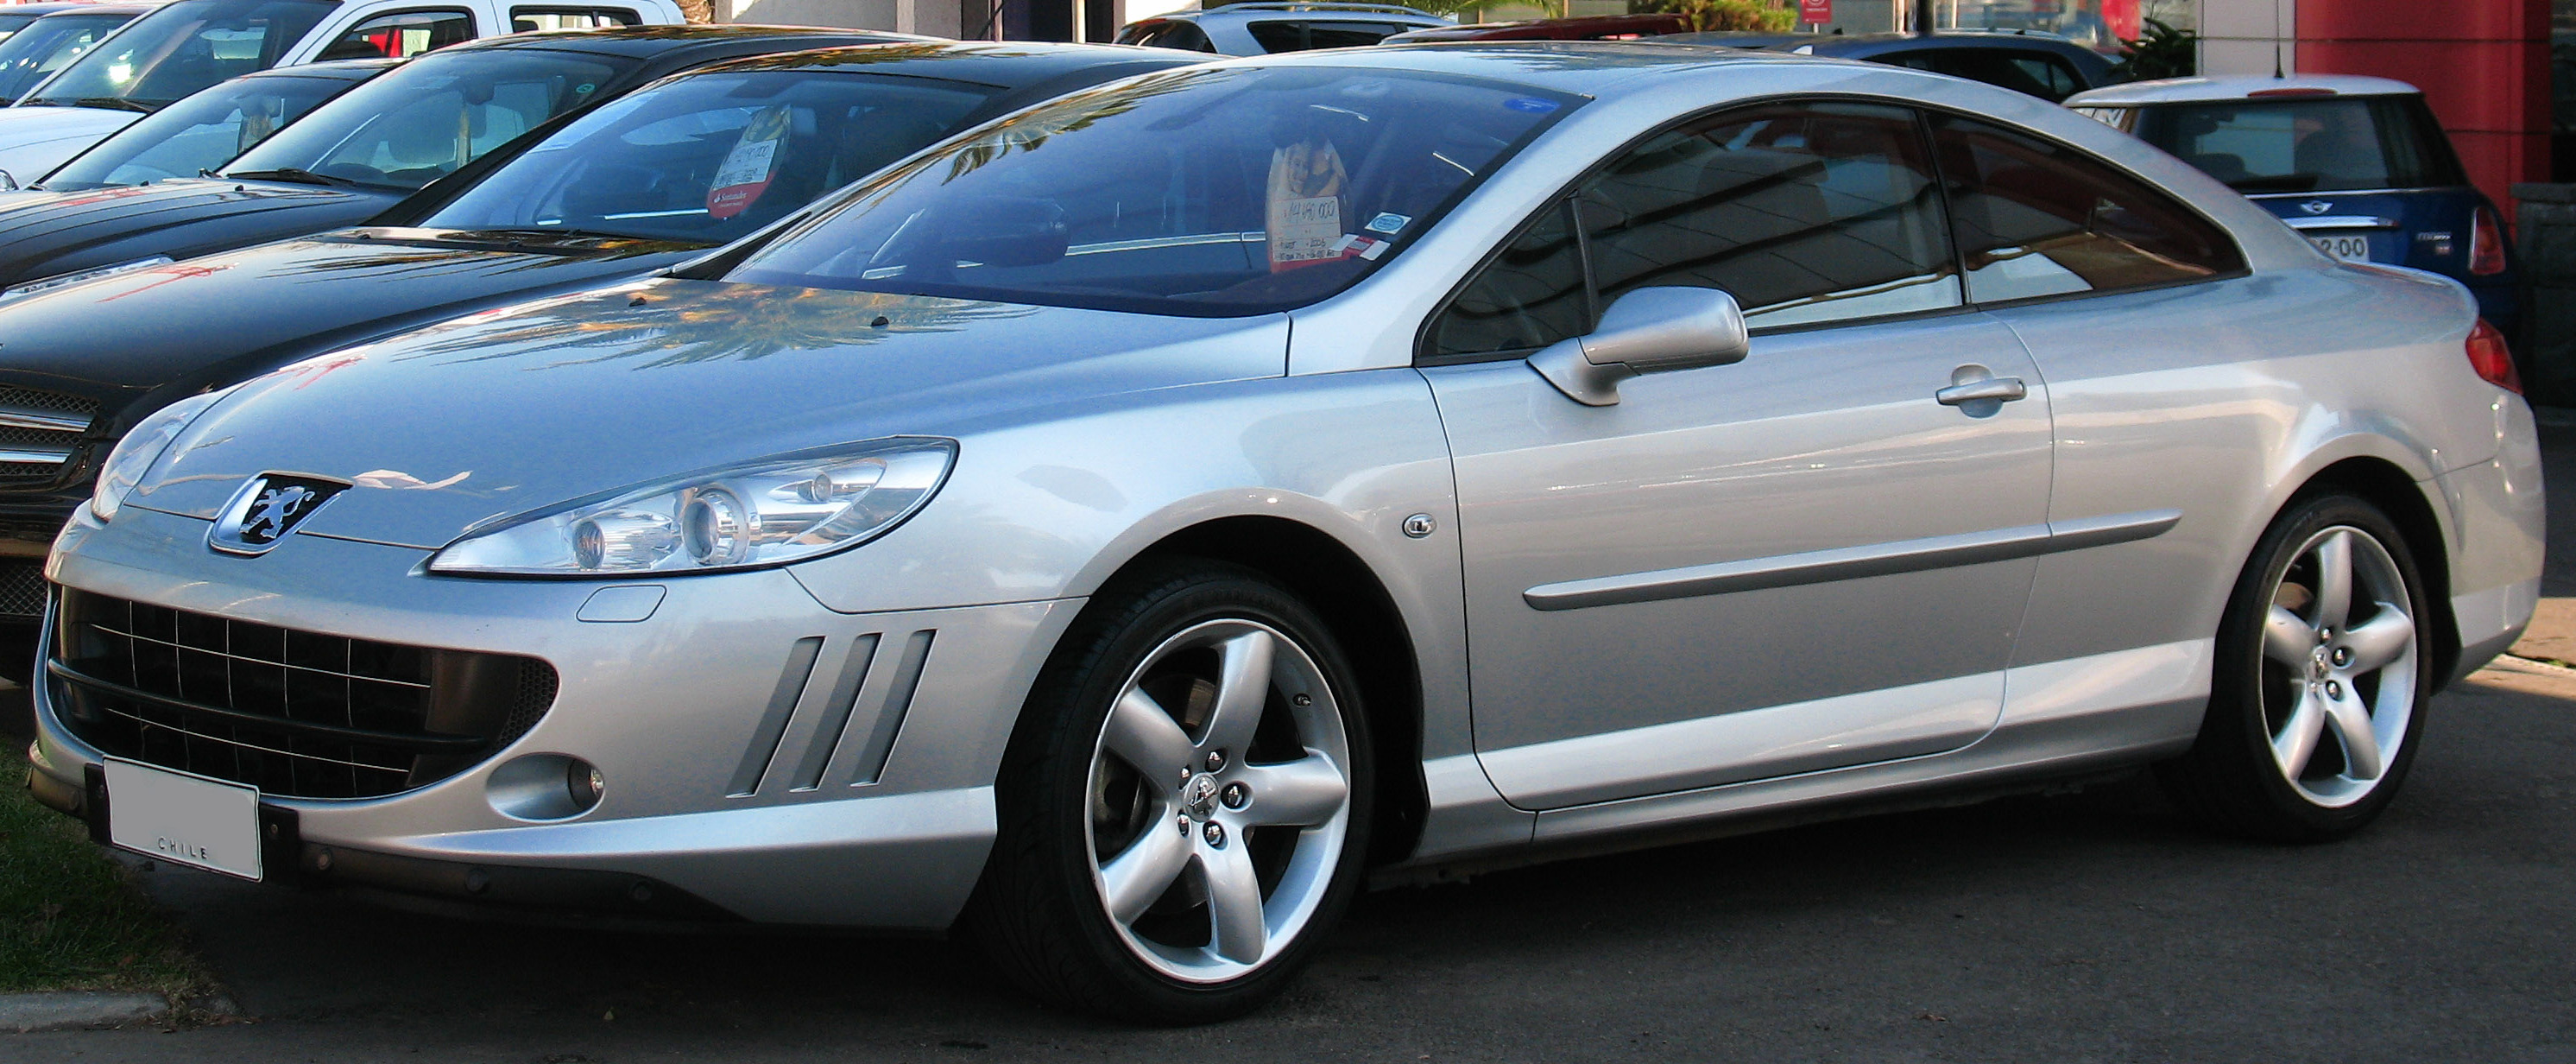 file peugeot 407 coupe 2 7 hdi 2006 15519269999 jpg wikimedia commons. Black Bedroom Furniture Sets. Home Design Ideas